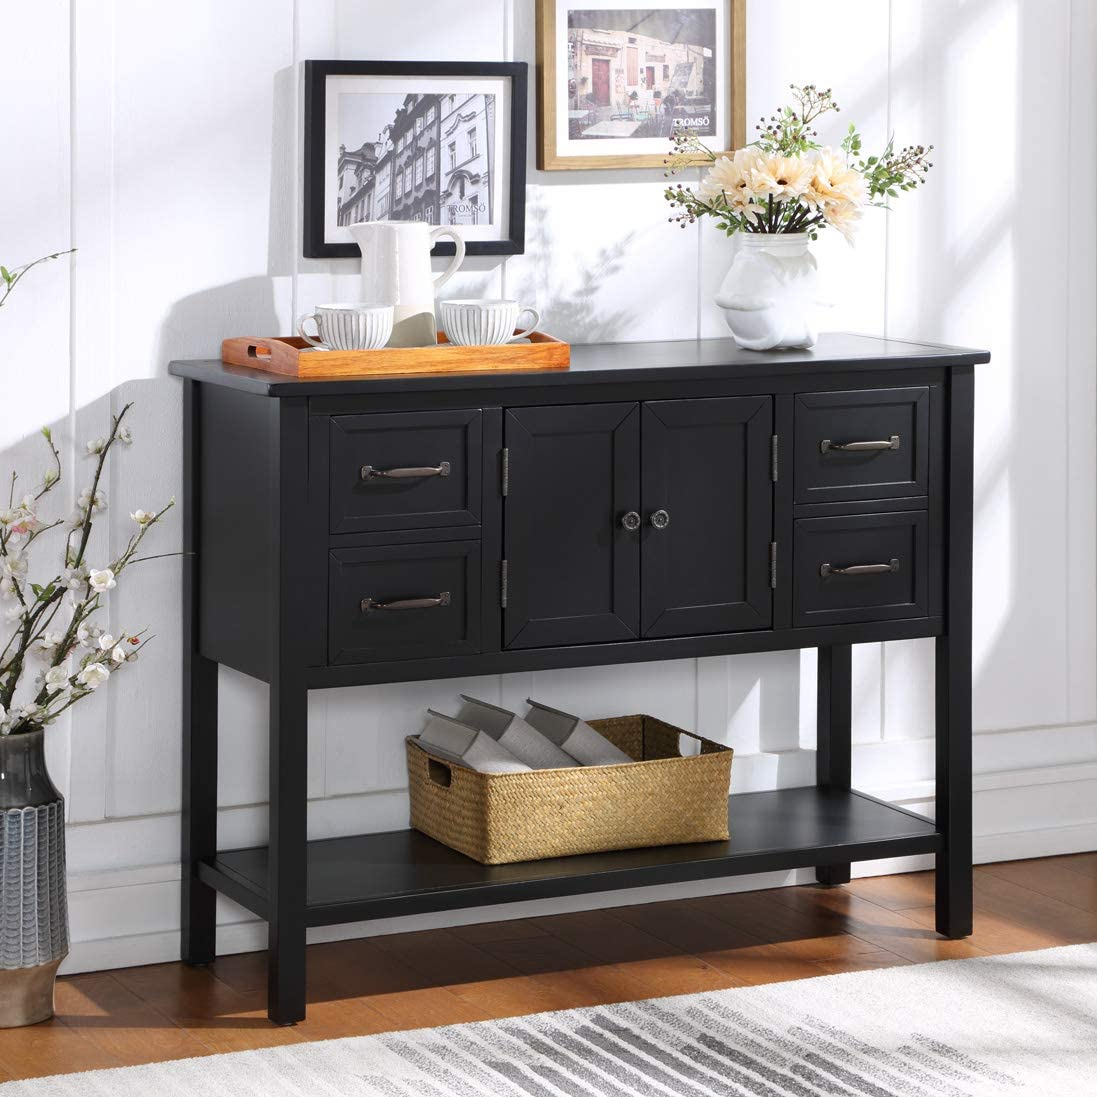 P PURLOVE Console Table Buffet Table Wood Buffet Cabinet with Drawer and Bottom Shelf, Sideboard Table for Living Room Kitchen